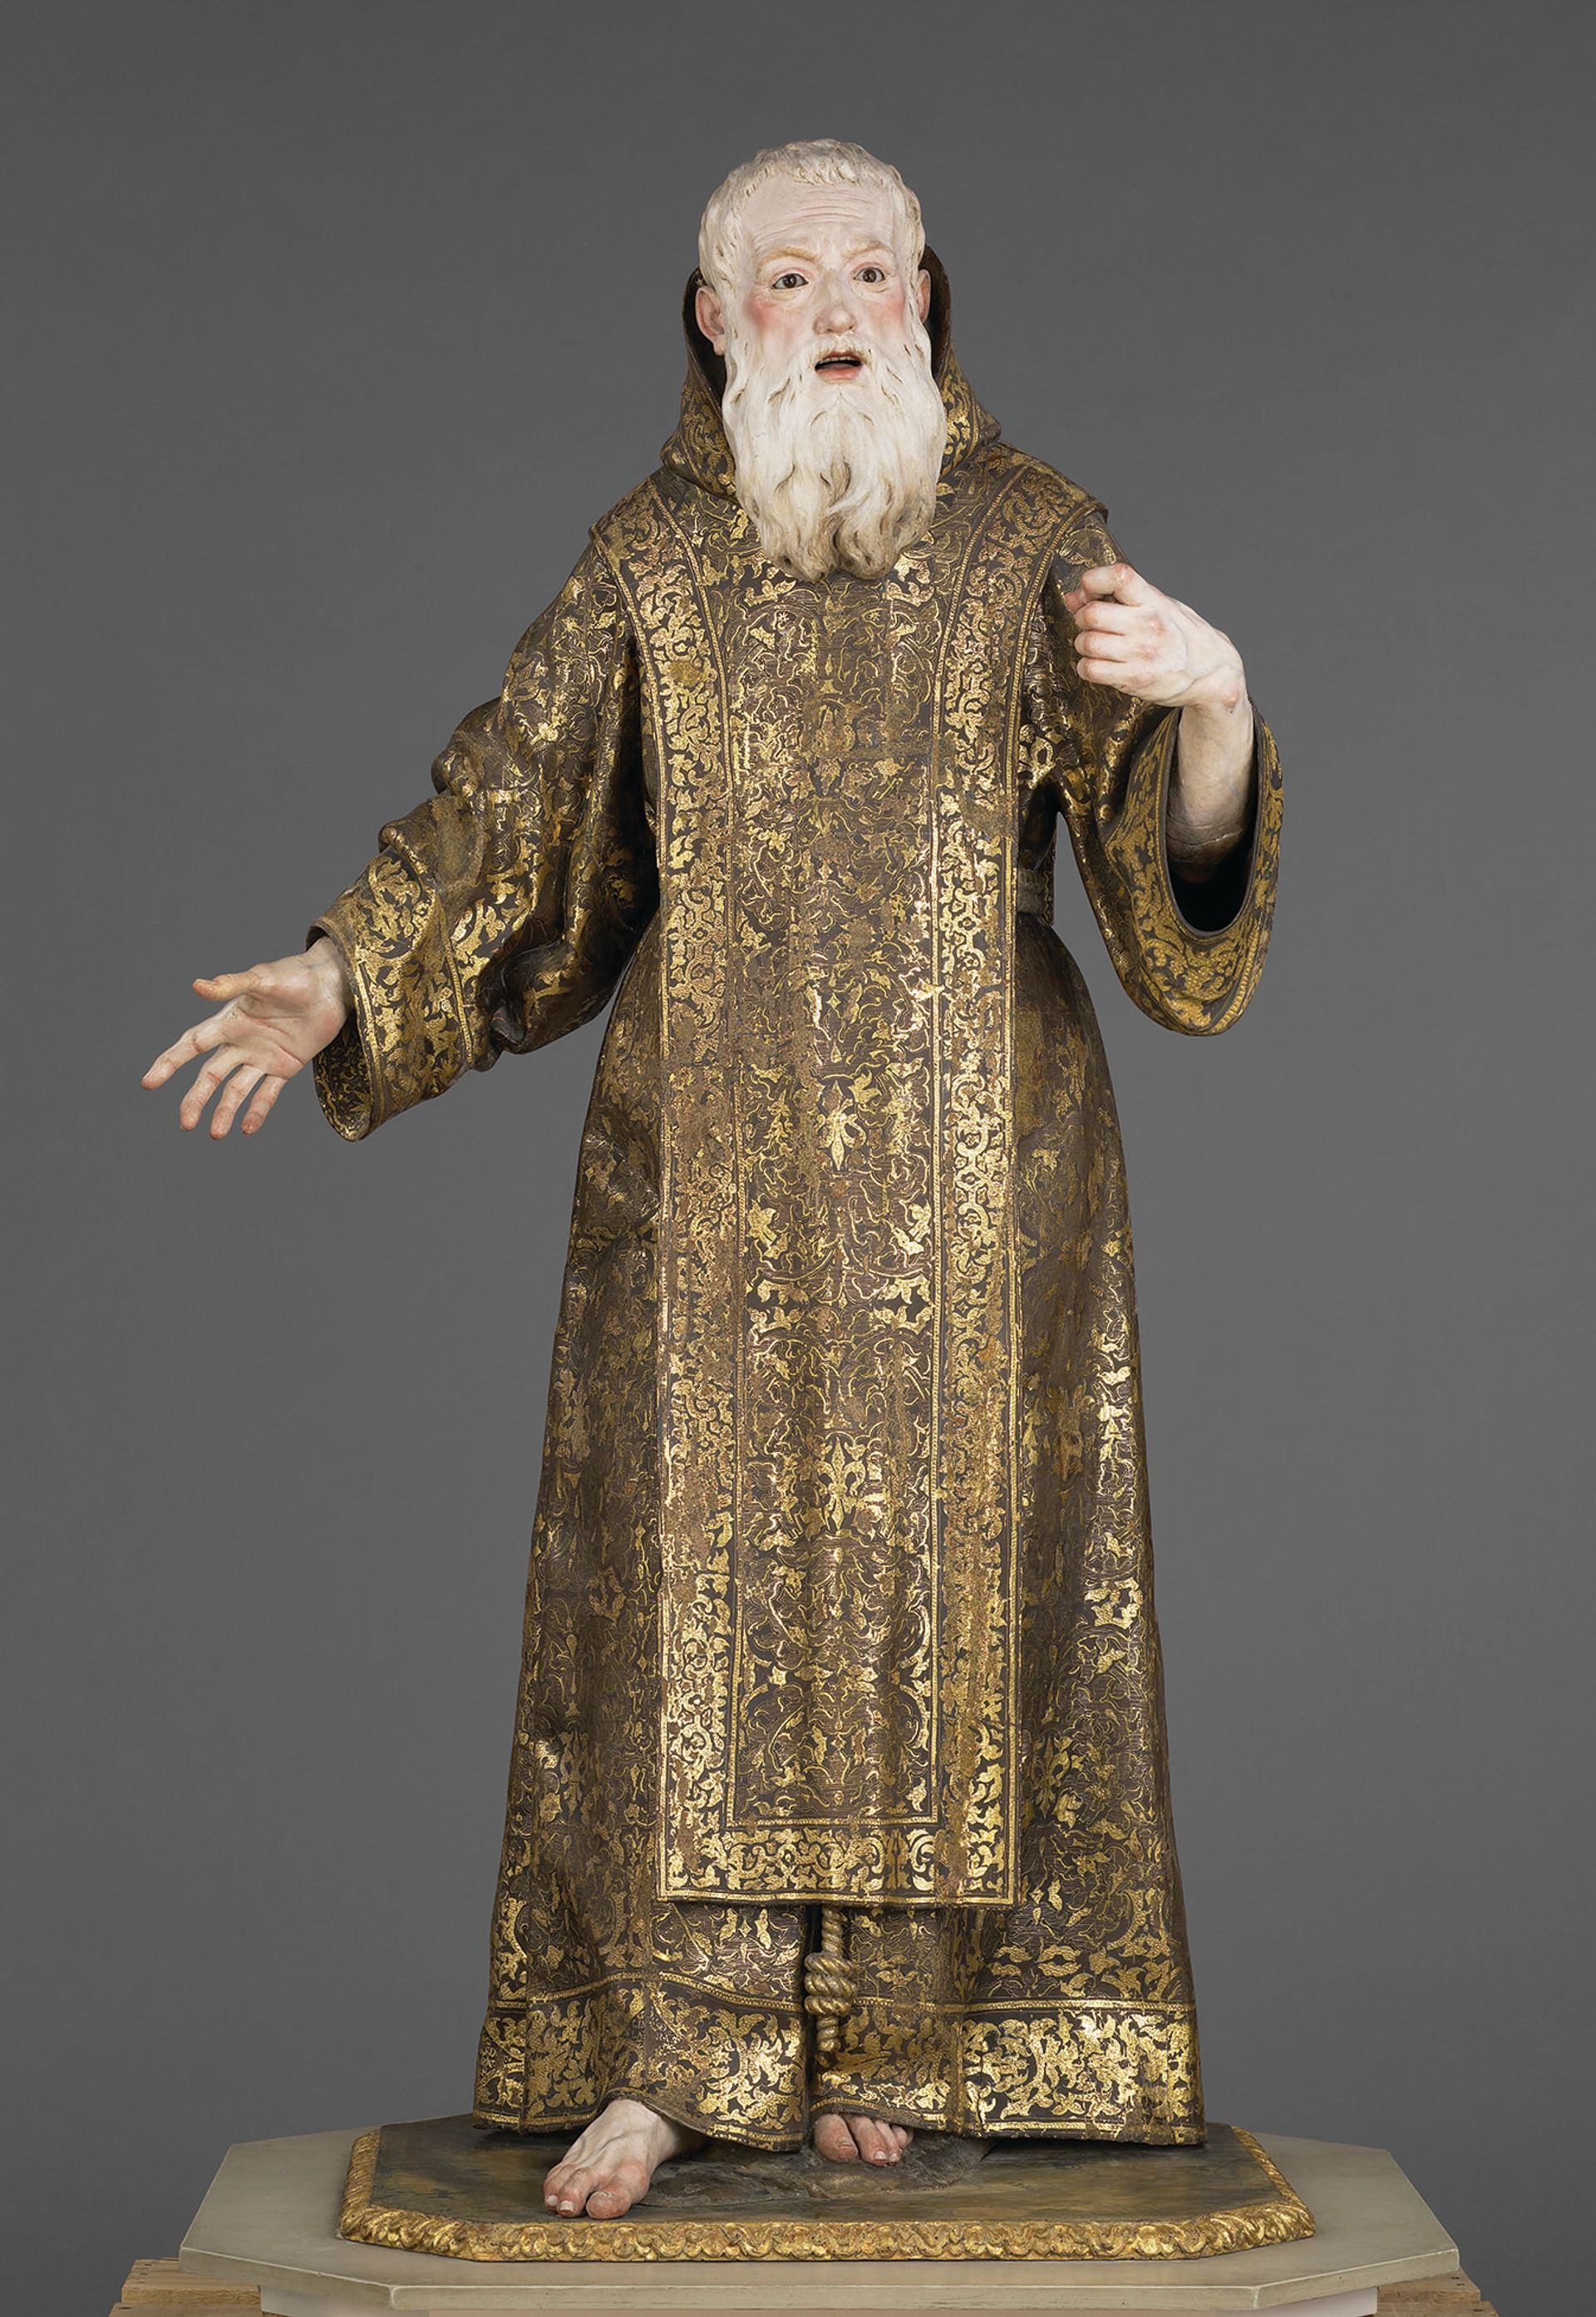 Roldán's figures are characterised by their expressive faces. Saint Ginés de la Jara (around 1692) is in the J. Paul Getty Museum in Los Angeles Courtesy J. Paul Getty Museum